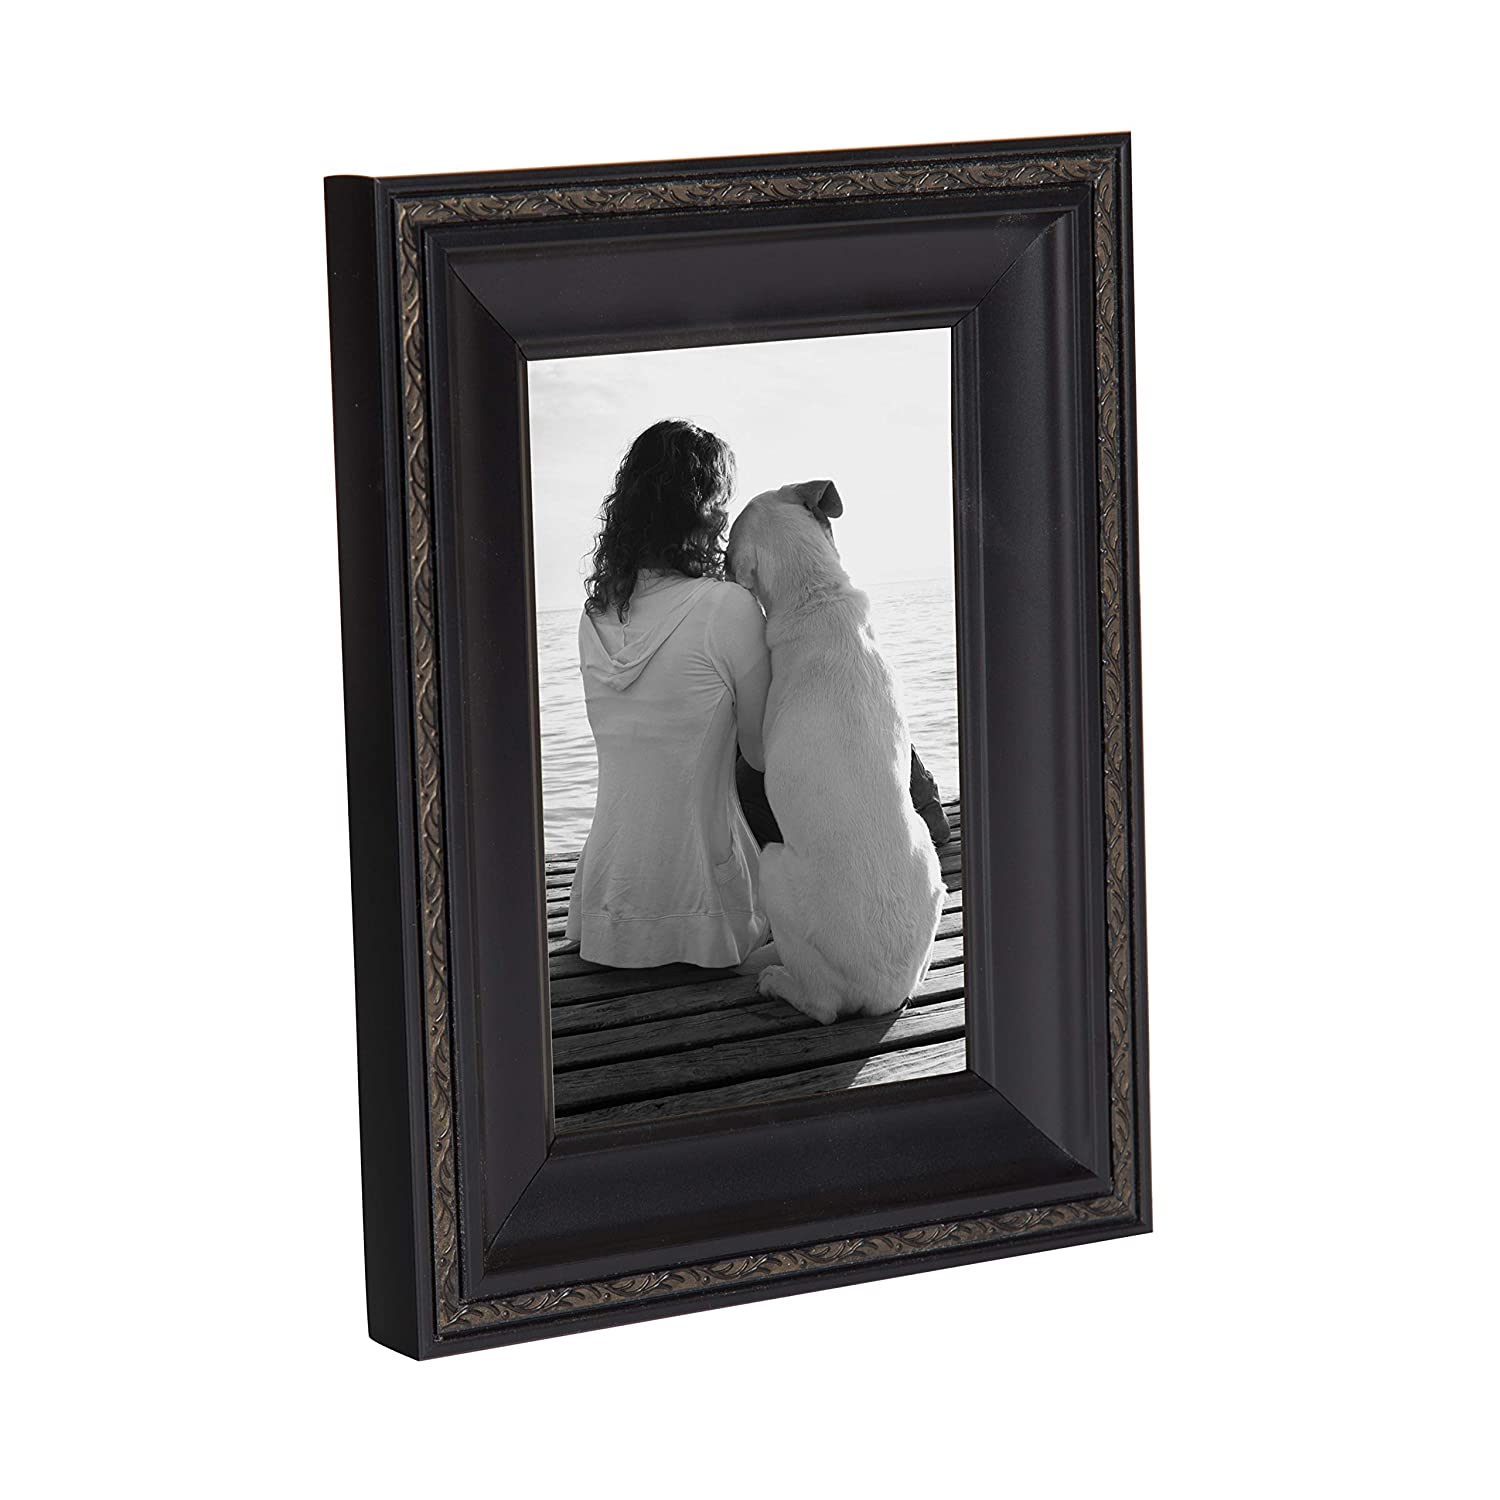 DesignOvation Martinez Wall Hanging or Table Standing Decorative Picture Frame Set, Antique Black 4×6, Pack of 4